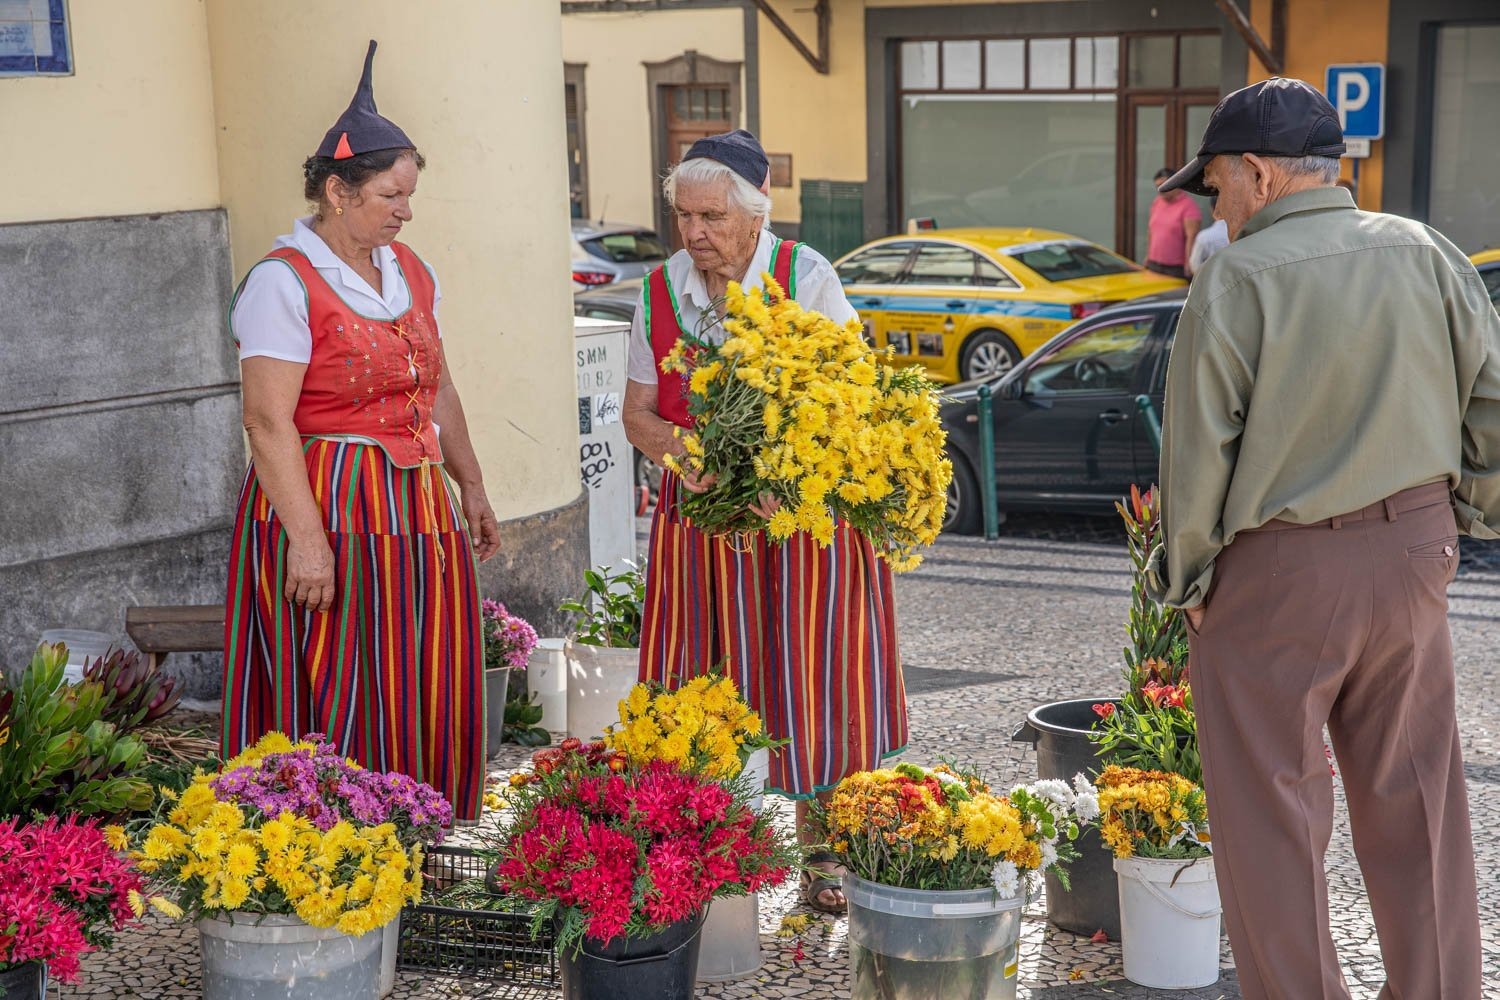 Farmers Market - Mercado Dos Lavradores - Ladys selling flowers at the market